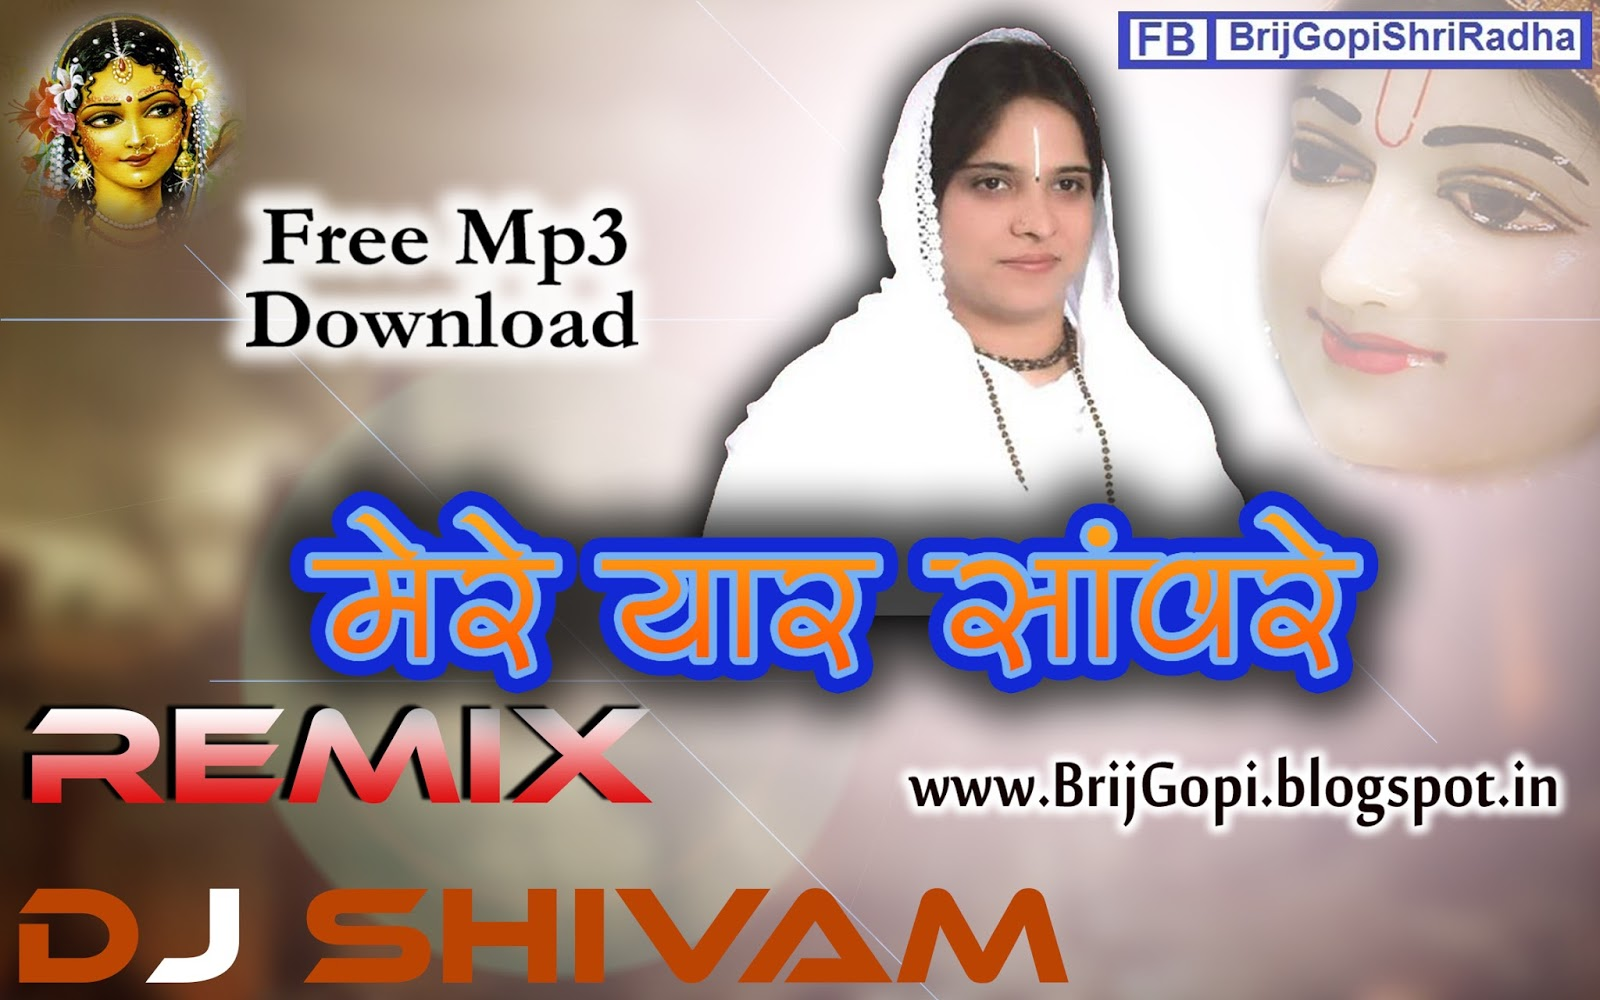 Dj shivam mp3